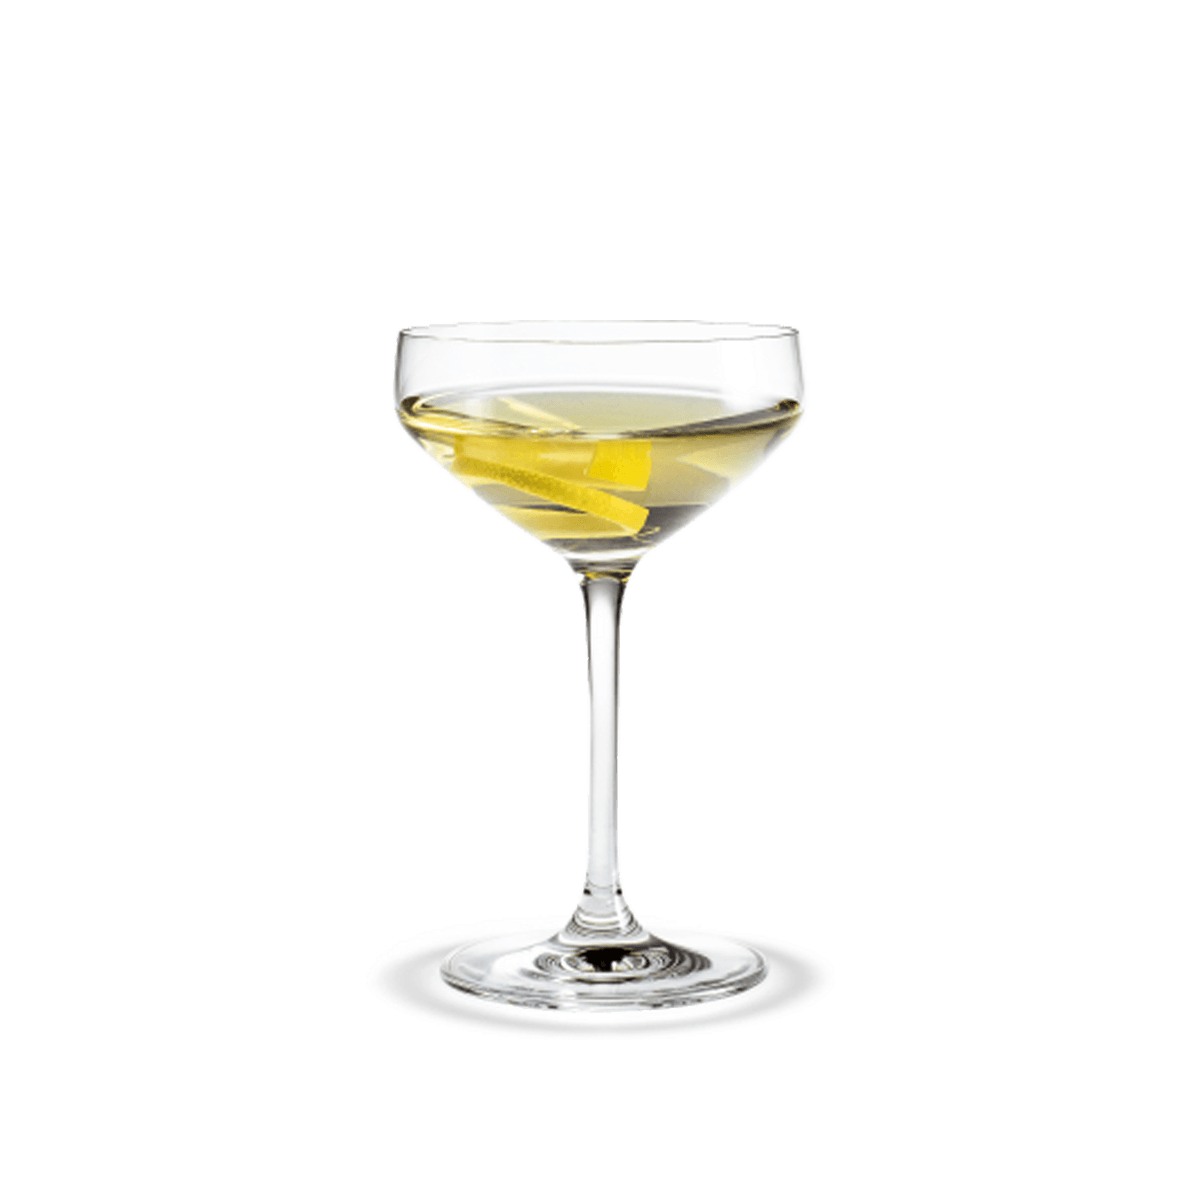 Perfection martini glass for Cocktail martini